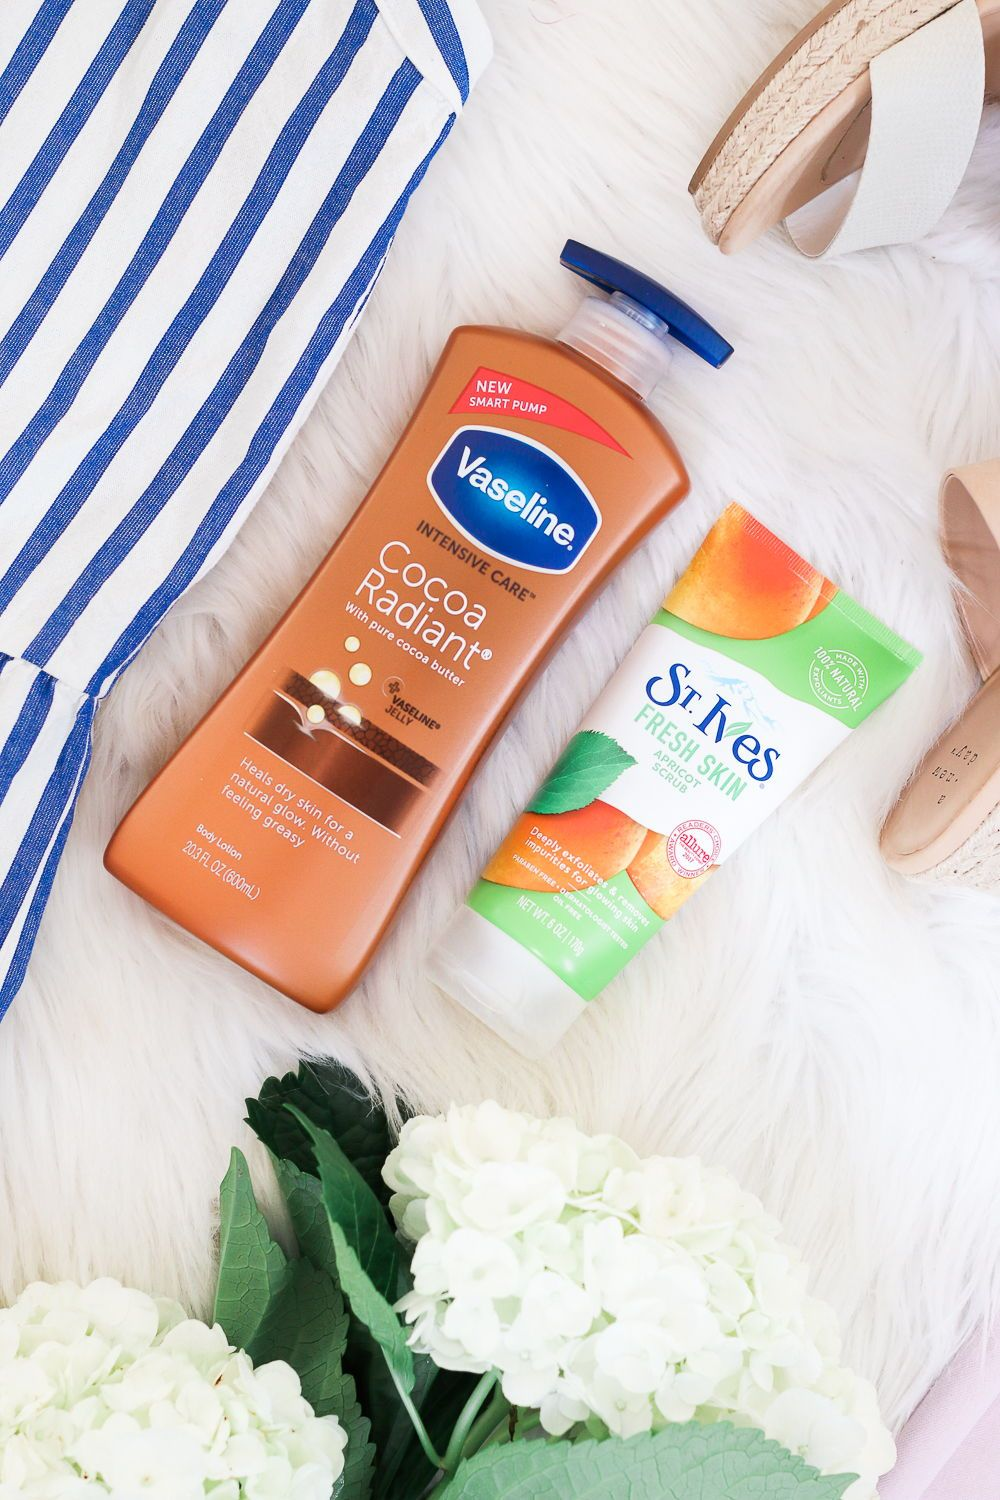 Sponsored Pin: Love Vaseline Cocoa Radiant Lotion and St. Ives Apricot Scrub. They've been 2 of my holy grail skincare products for years, and I got them at Target! Seriously, Target is a goldmine for spring style and beauty finds right now! Now through May 4th or anytime 5/5-5/18, if you buy 4 qualifying hair or personal care products from Unilever (including Cocoa Radiant or St. Ives), you'll get a $5 Target Gift Card. Click through to shop! #targetfinds #hellospring #target #springbeauty